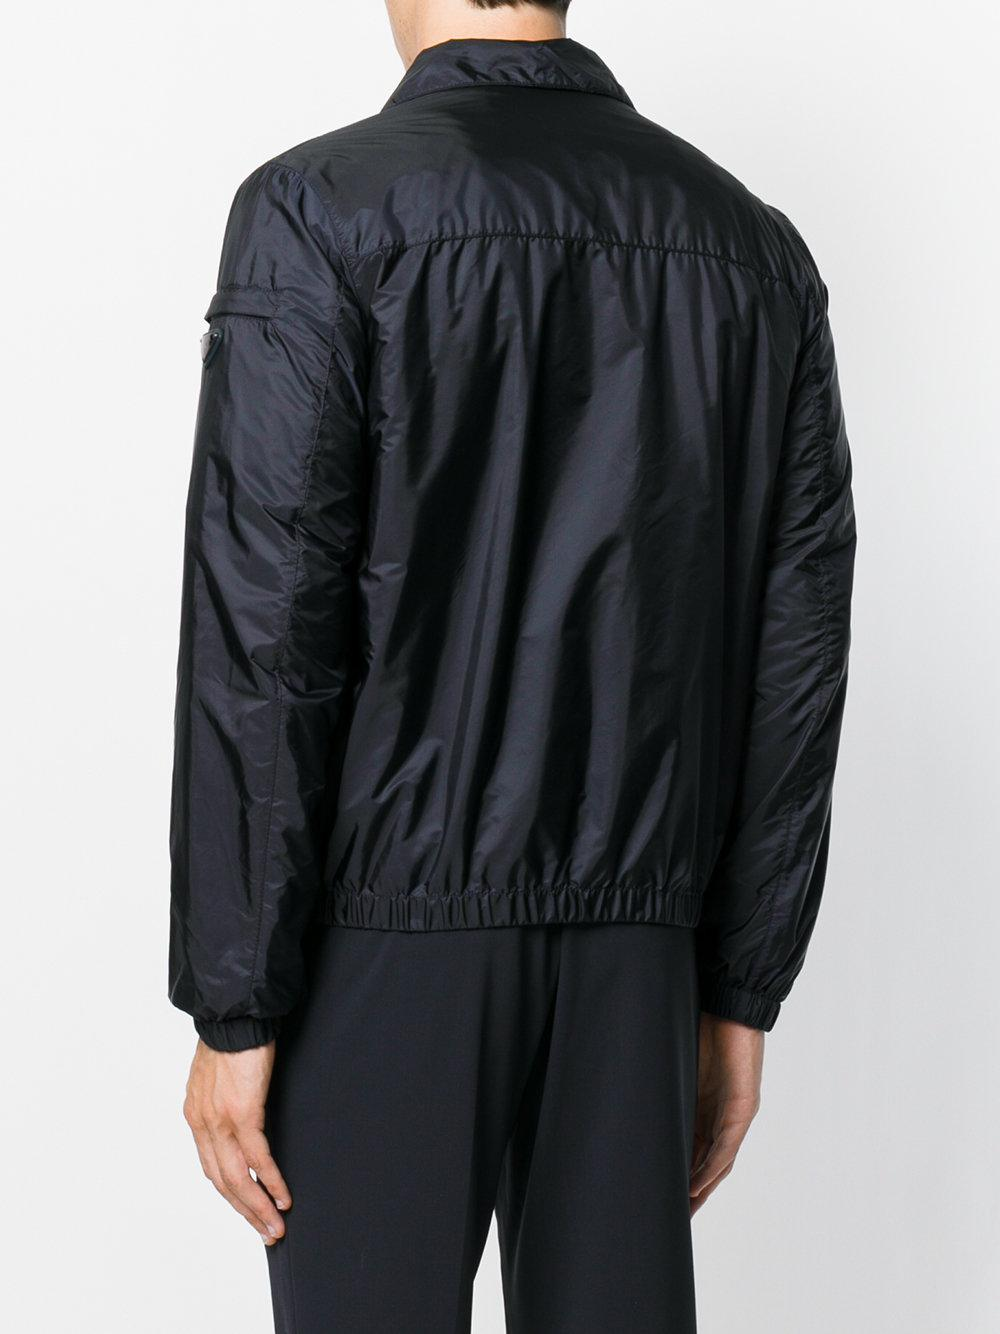 Prada Synthetic Bomber Jacket in Blue for Men